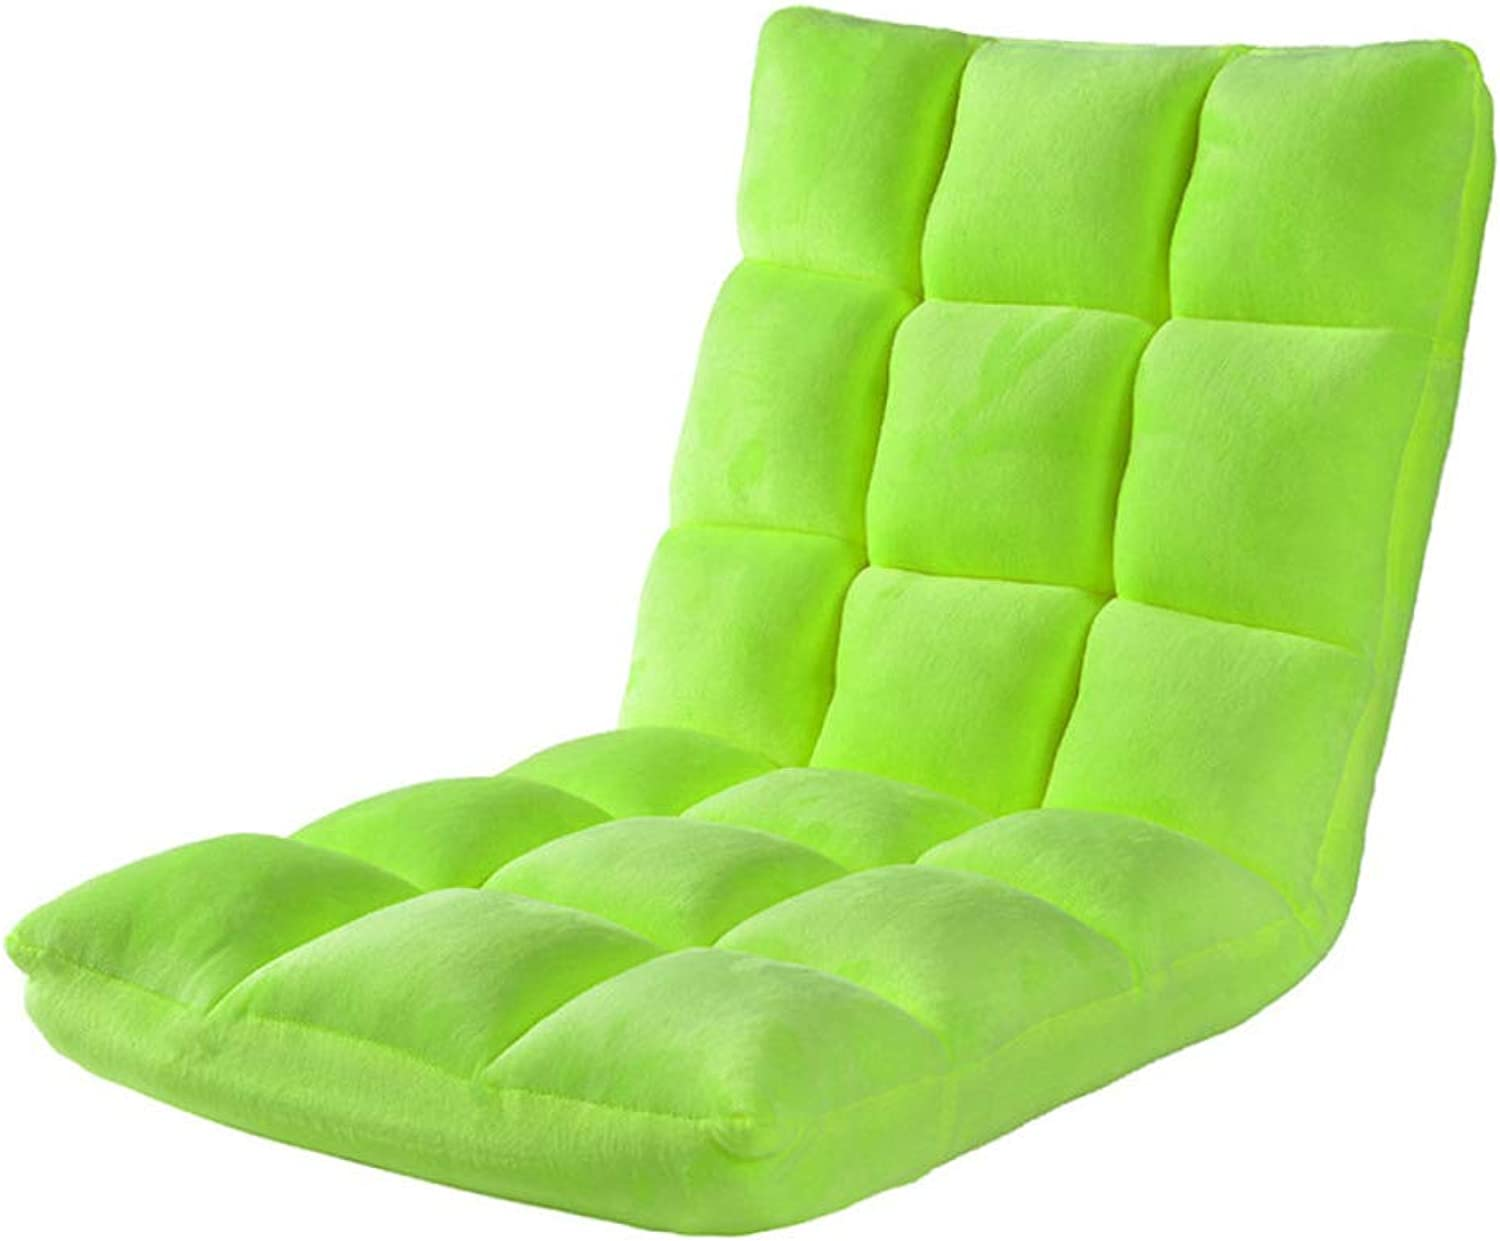 Folding Couch,Tatami Bed Backrest Foldable Bedroom Balcony Lunch Break Chair Bay Window Lounge Chair Multiple colors to Choose from,Fruitgreen